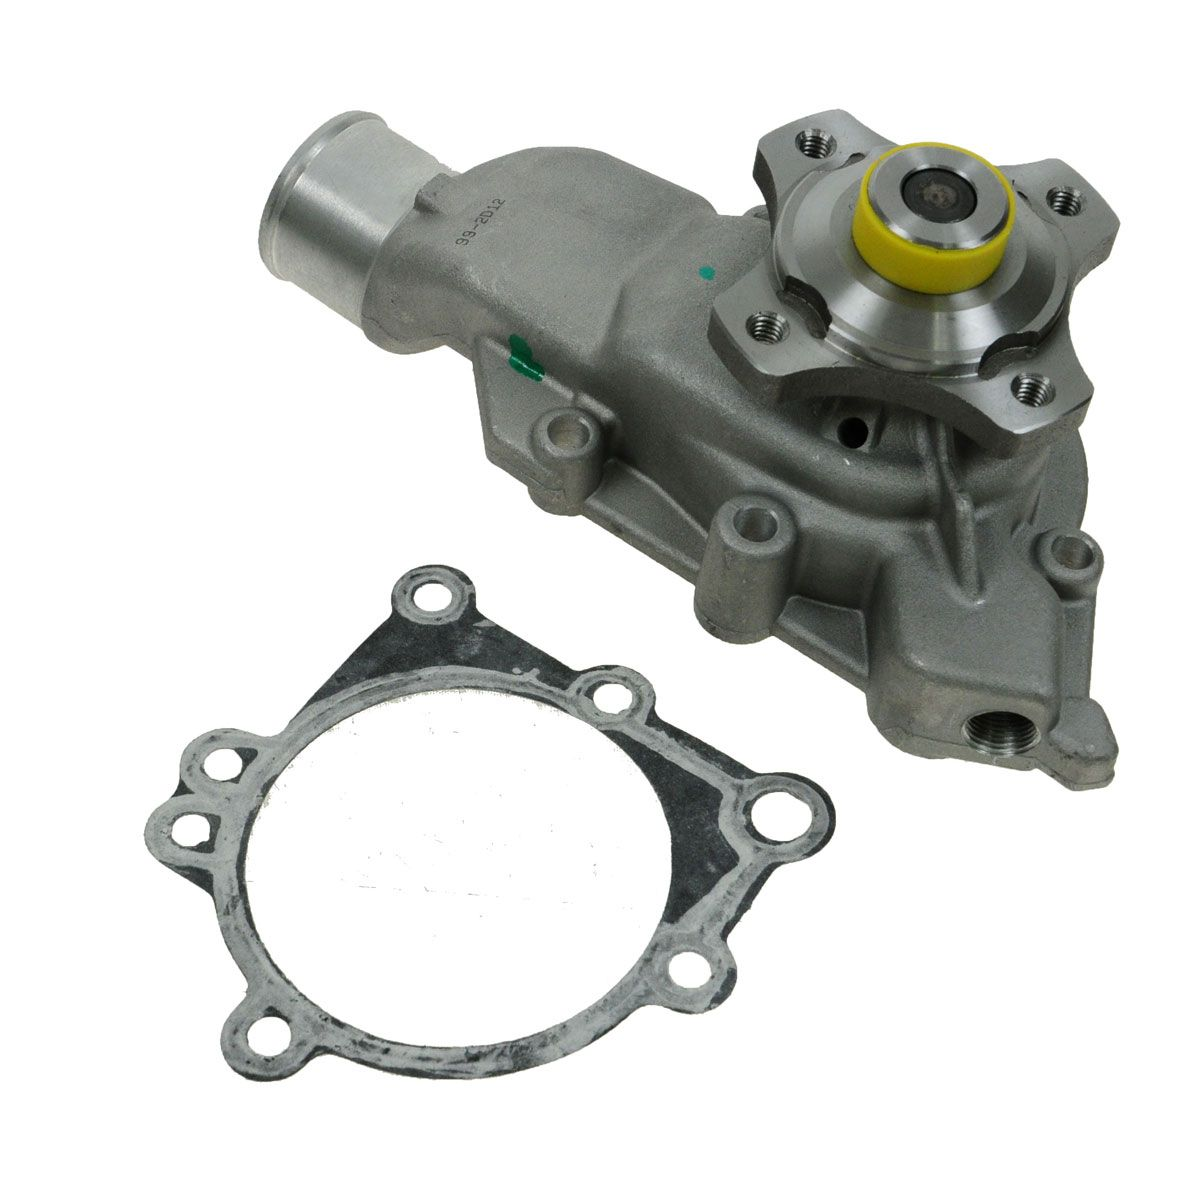 For Jeep Wrangler 2000 2006 Replace 2a34 Remanufactured: Water Pump 5012366AB For 00-06 Jeep Wrangler 99-04 Grand